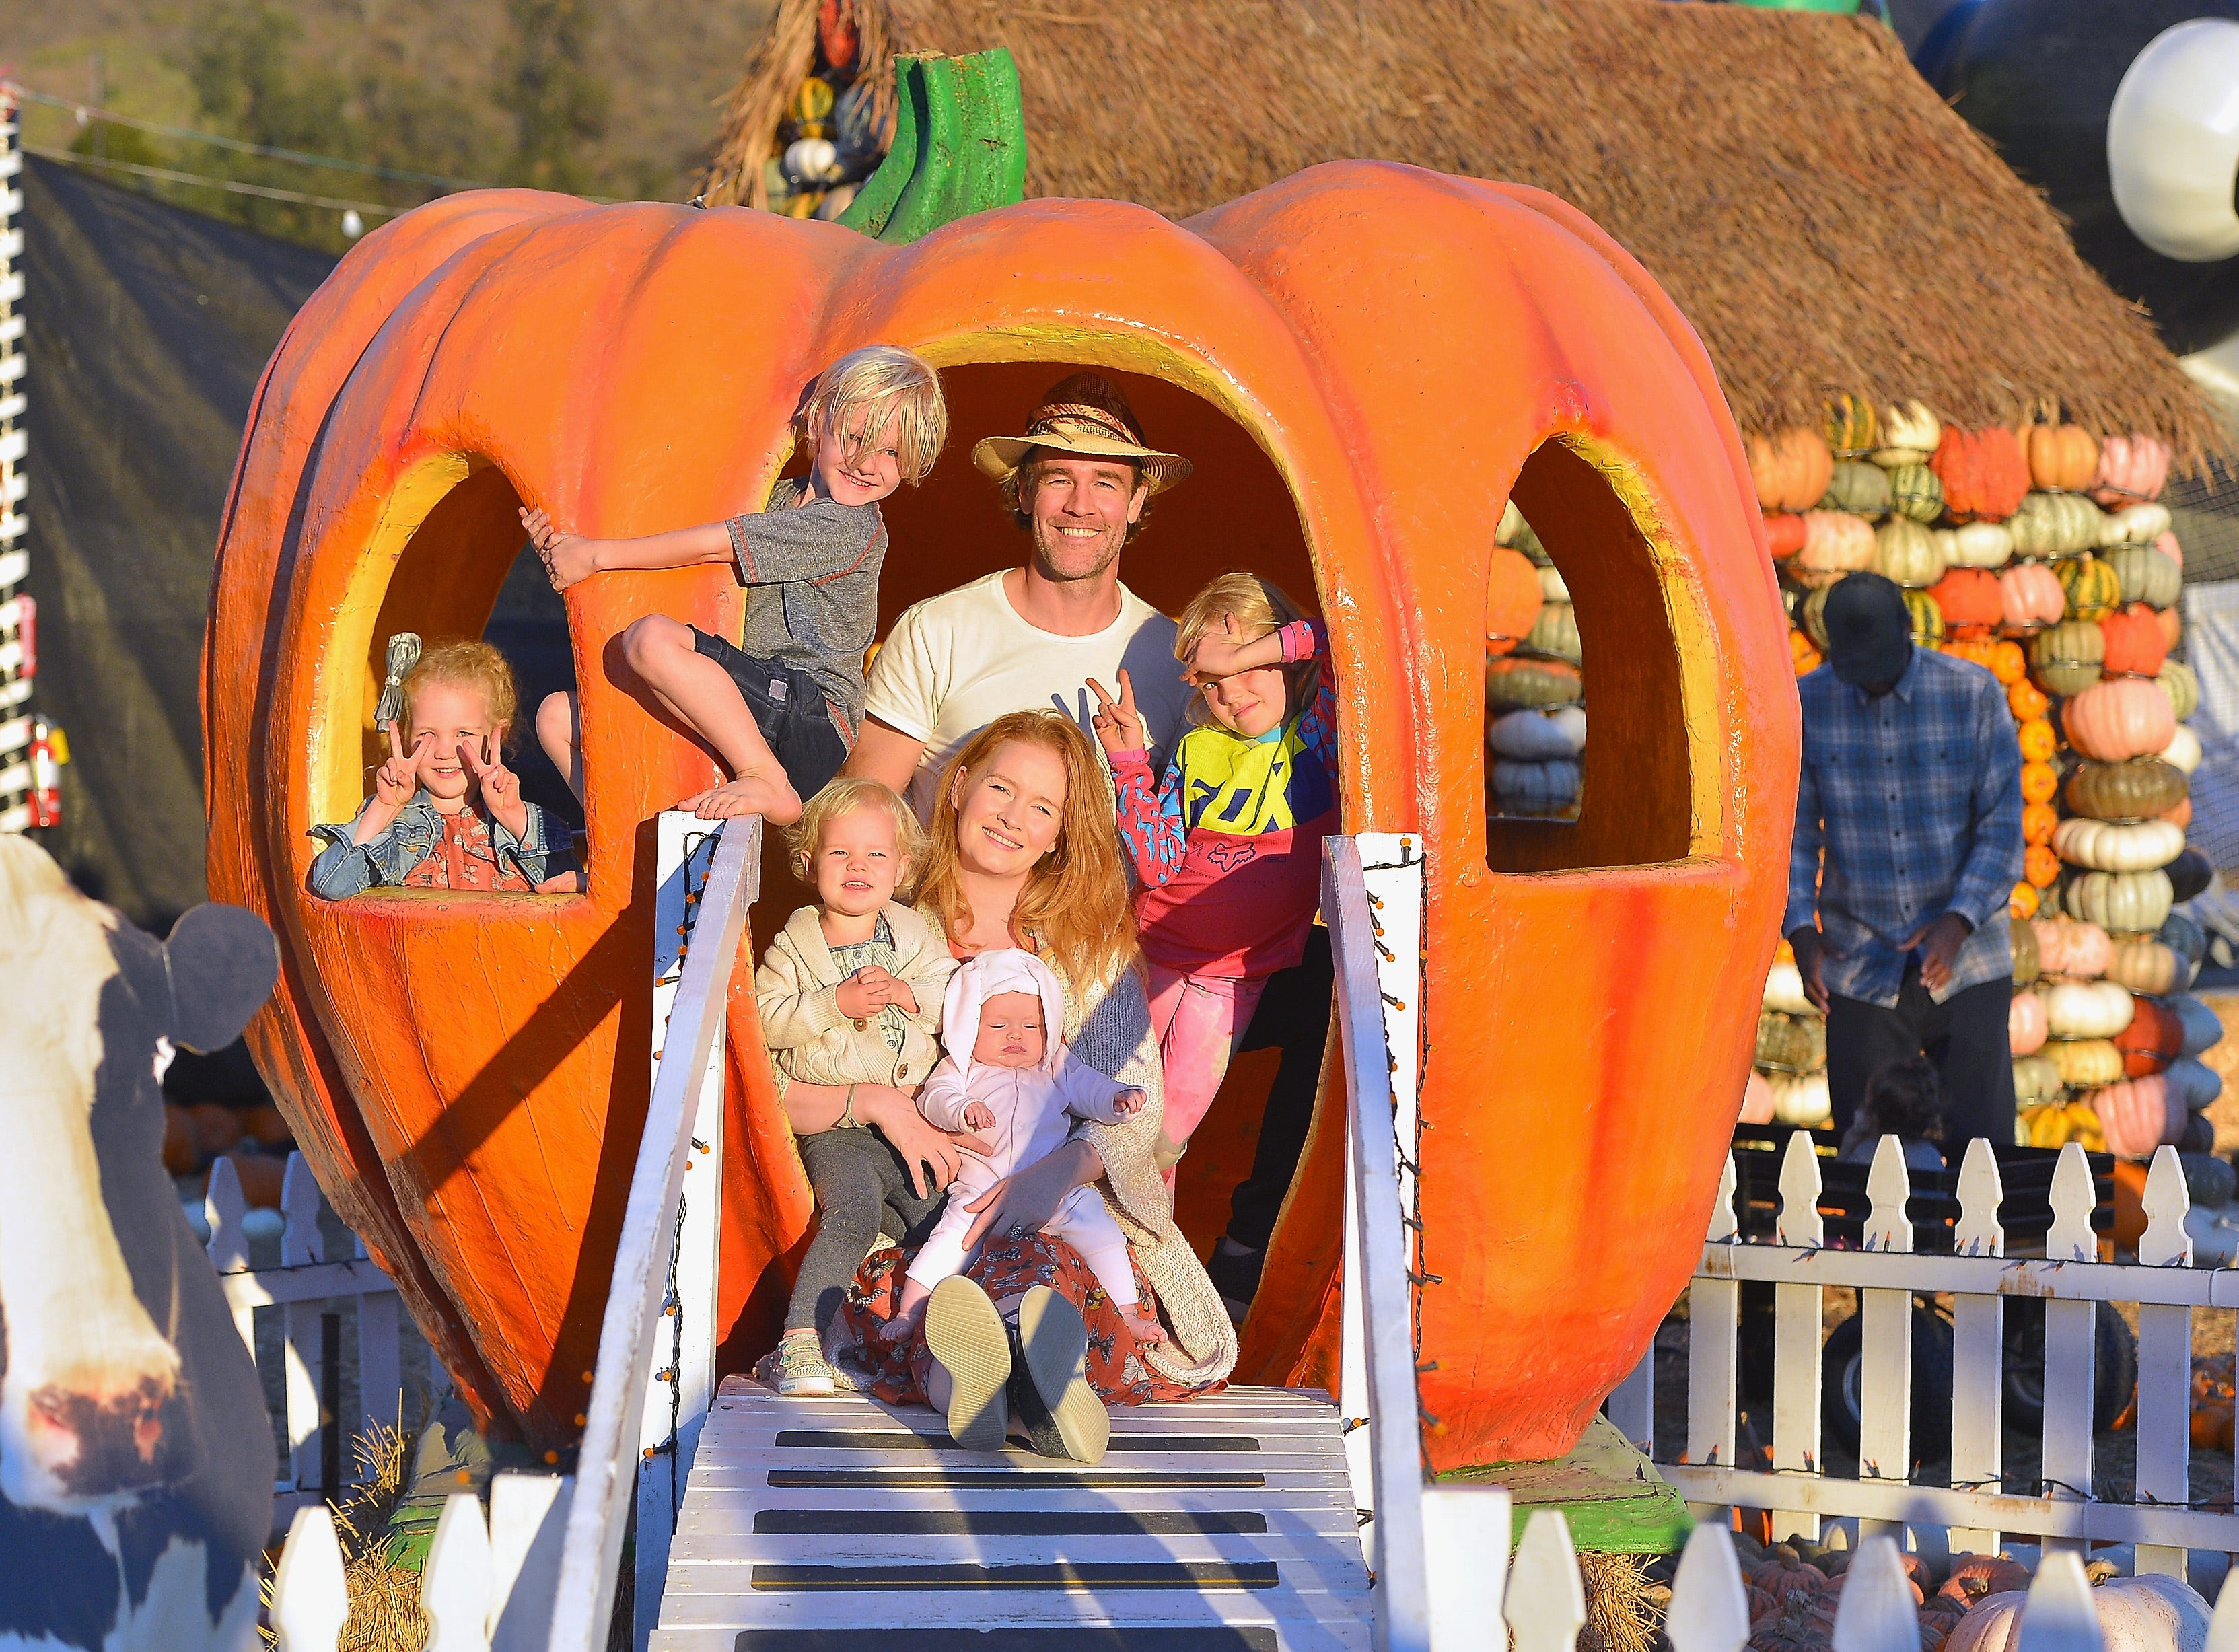 CULVER CITY, CA - OCTOBER 15:  James Van Der Beek, Kimberly Brook, Olivia Van Der Beek, Joshua Van Der Beek, Emilia Van Der Beek and Annabel Leah Van Der Beek attend The fairlife Family Fun Festival Hosted by fairlife Ultra-Filtered Milk at Mr. Bones Pumpkin Patch on October 15, 2018 in Culver City, California.  (Photo by Charley Gallay/Getty Images for fairlife ) ORG XMIT: 775241654 ORIG FILE ID: 1052220146